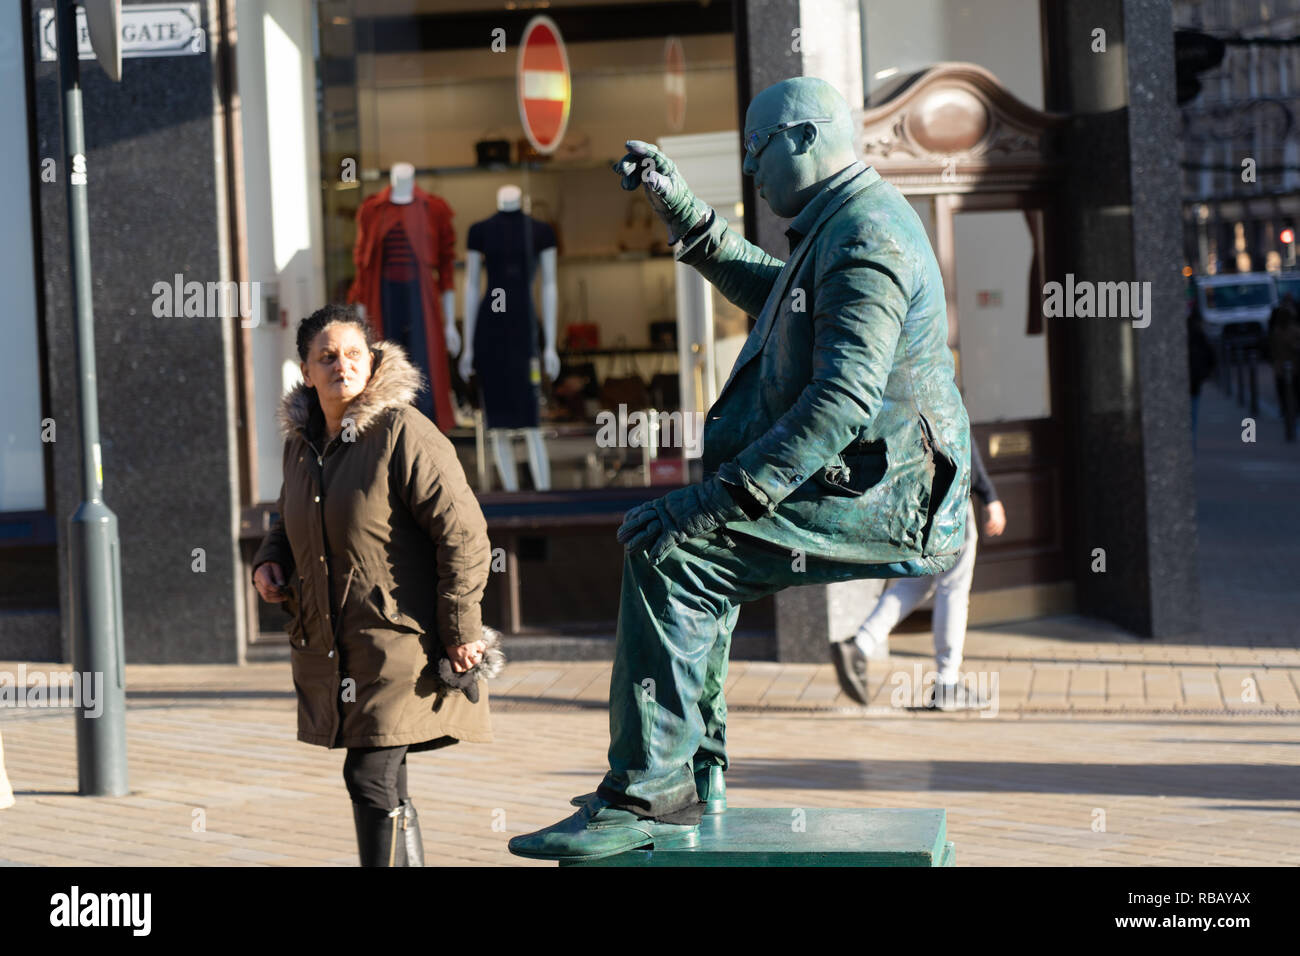 Living levitating statue waving at a passer by in Briggate,Leeds,West Yorkshire,England,UK. - Stock Image